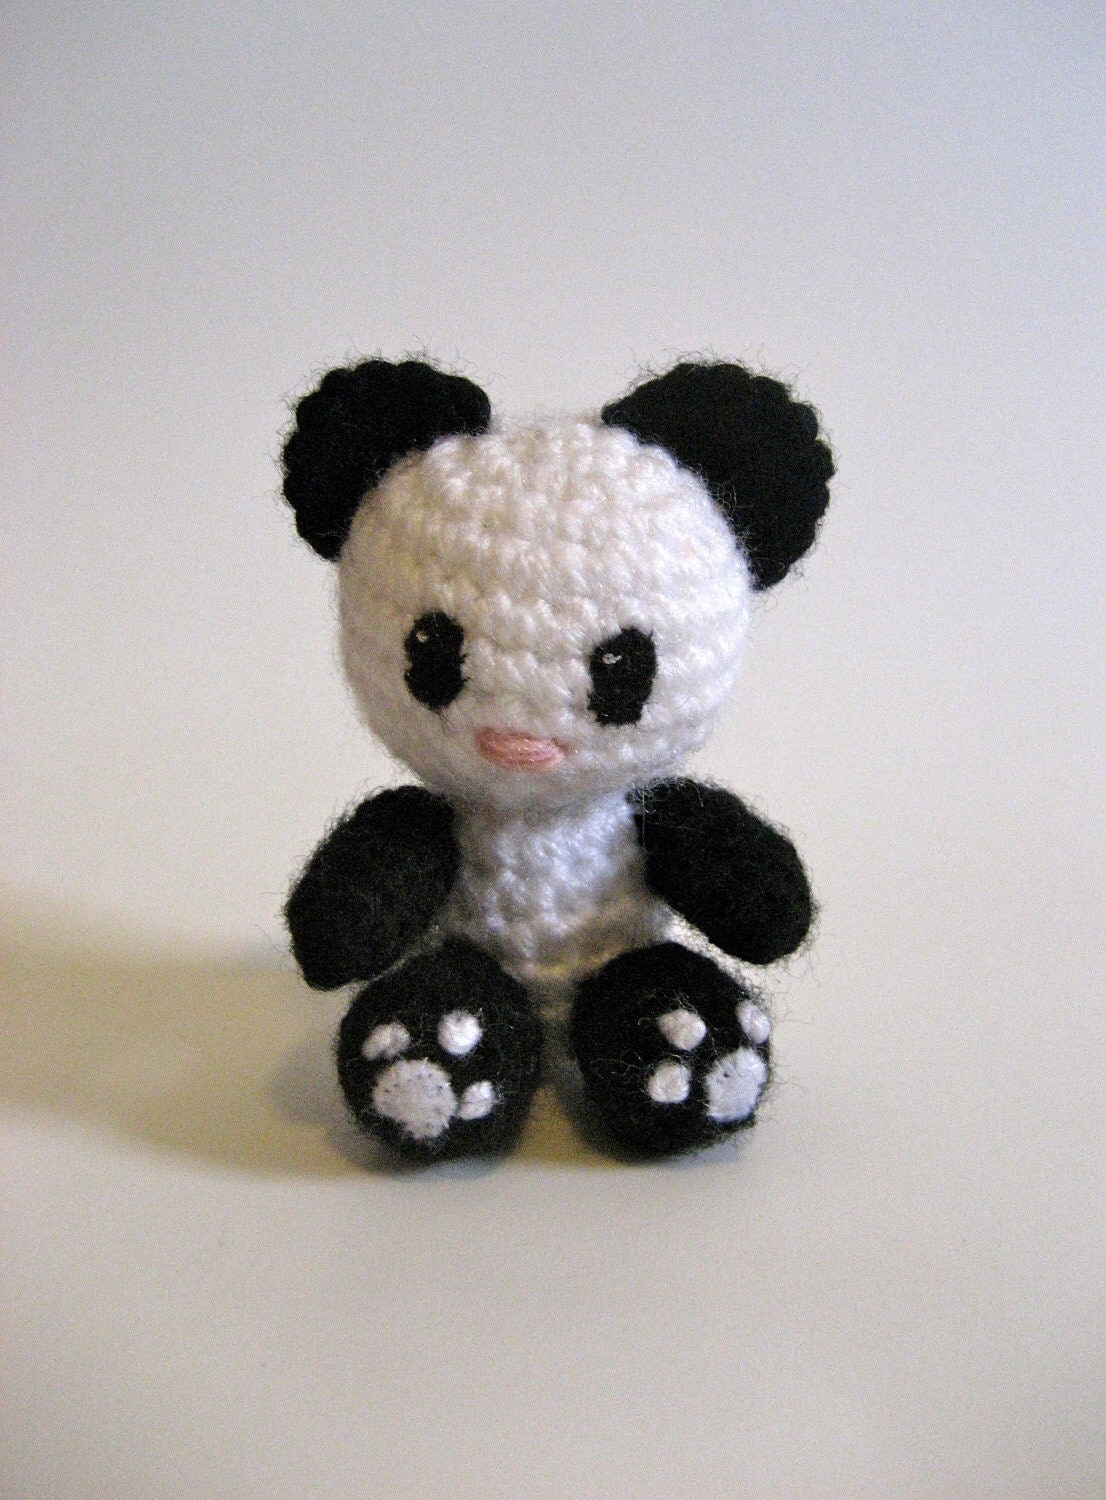 Amigurumi Patterns Panda Bear : 404 (Page Not Found) Error - Ever feel like youre in the ...